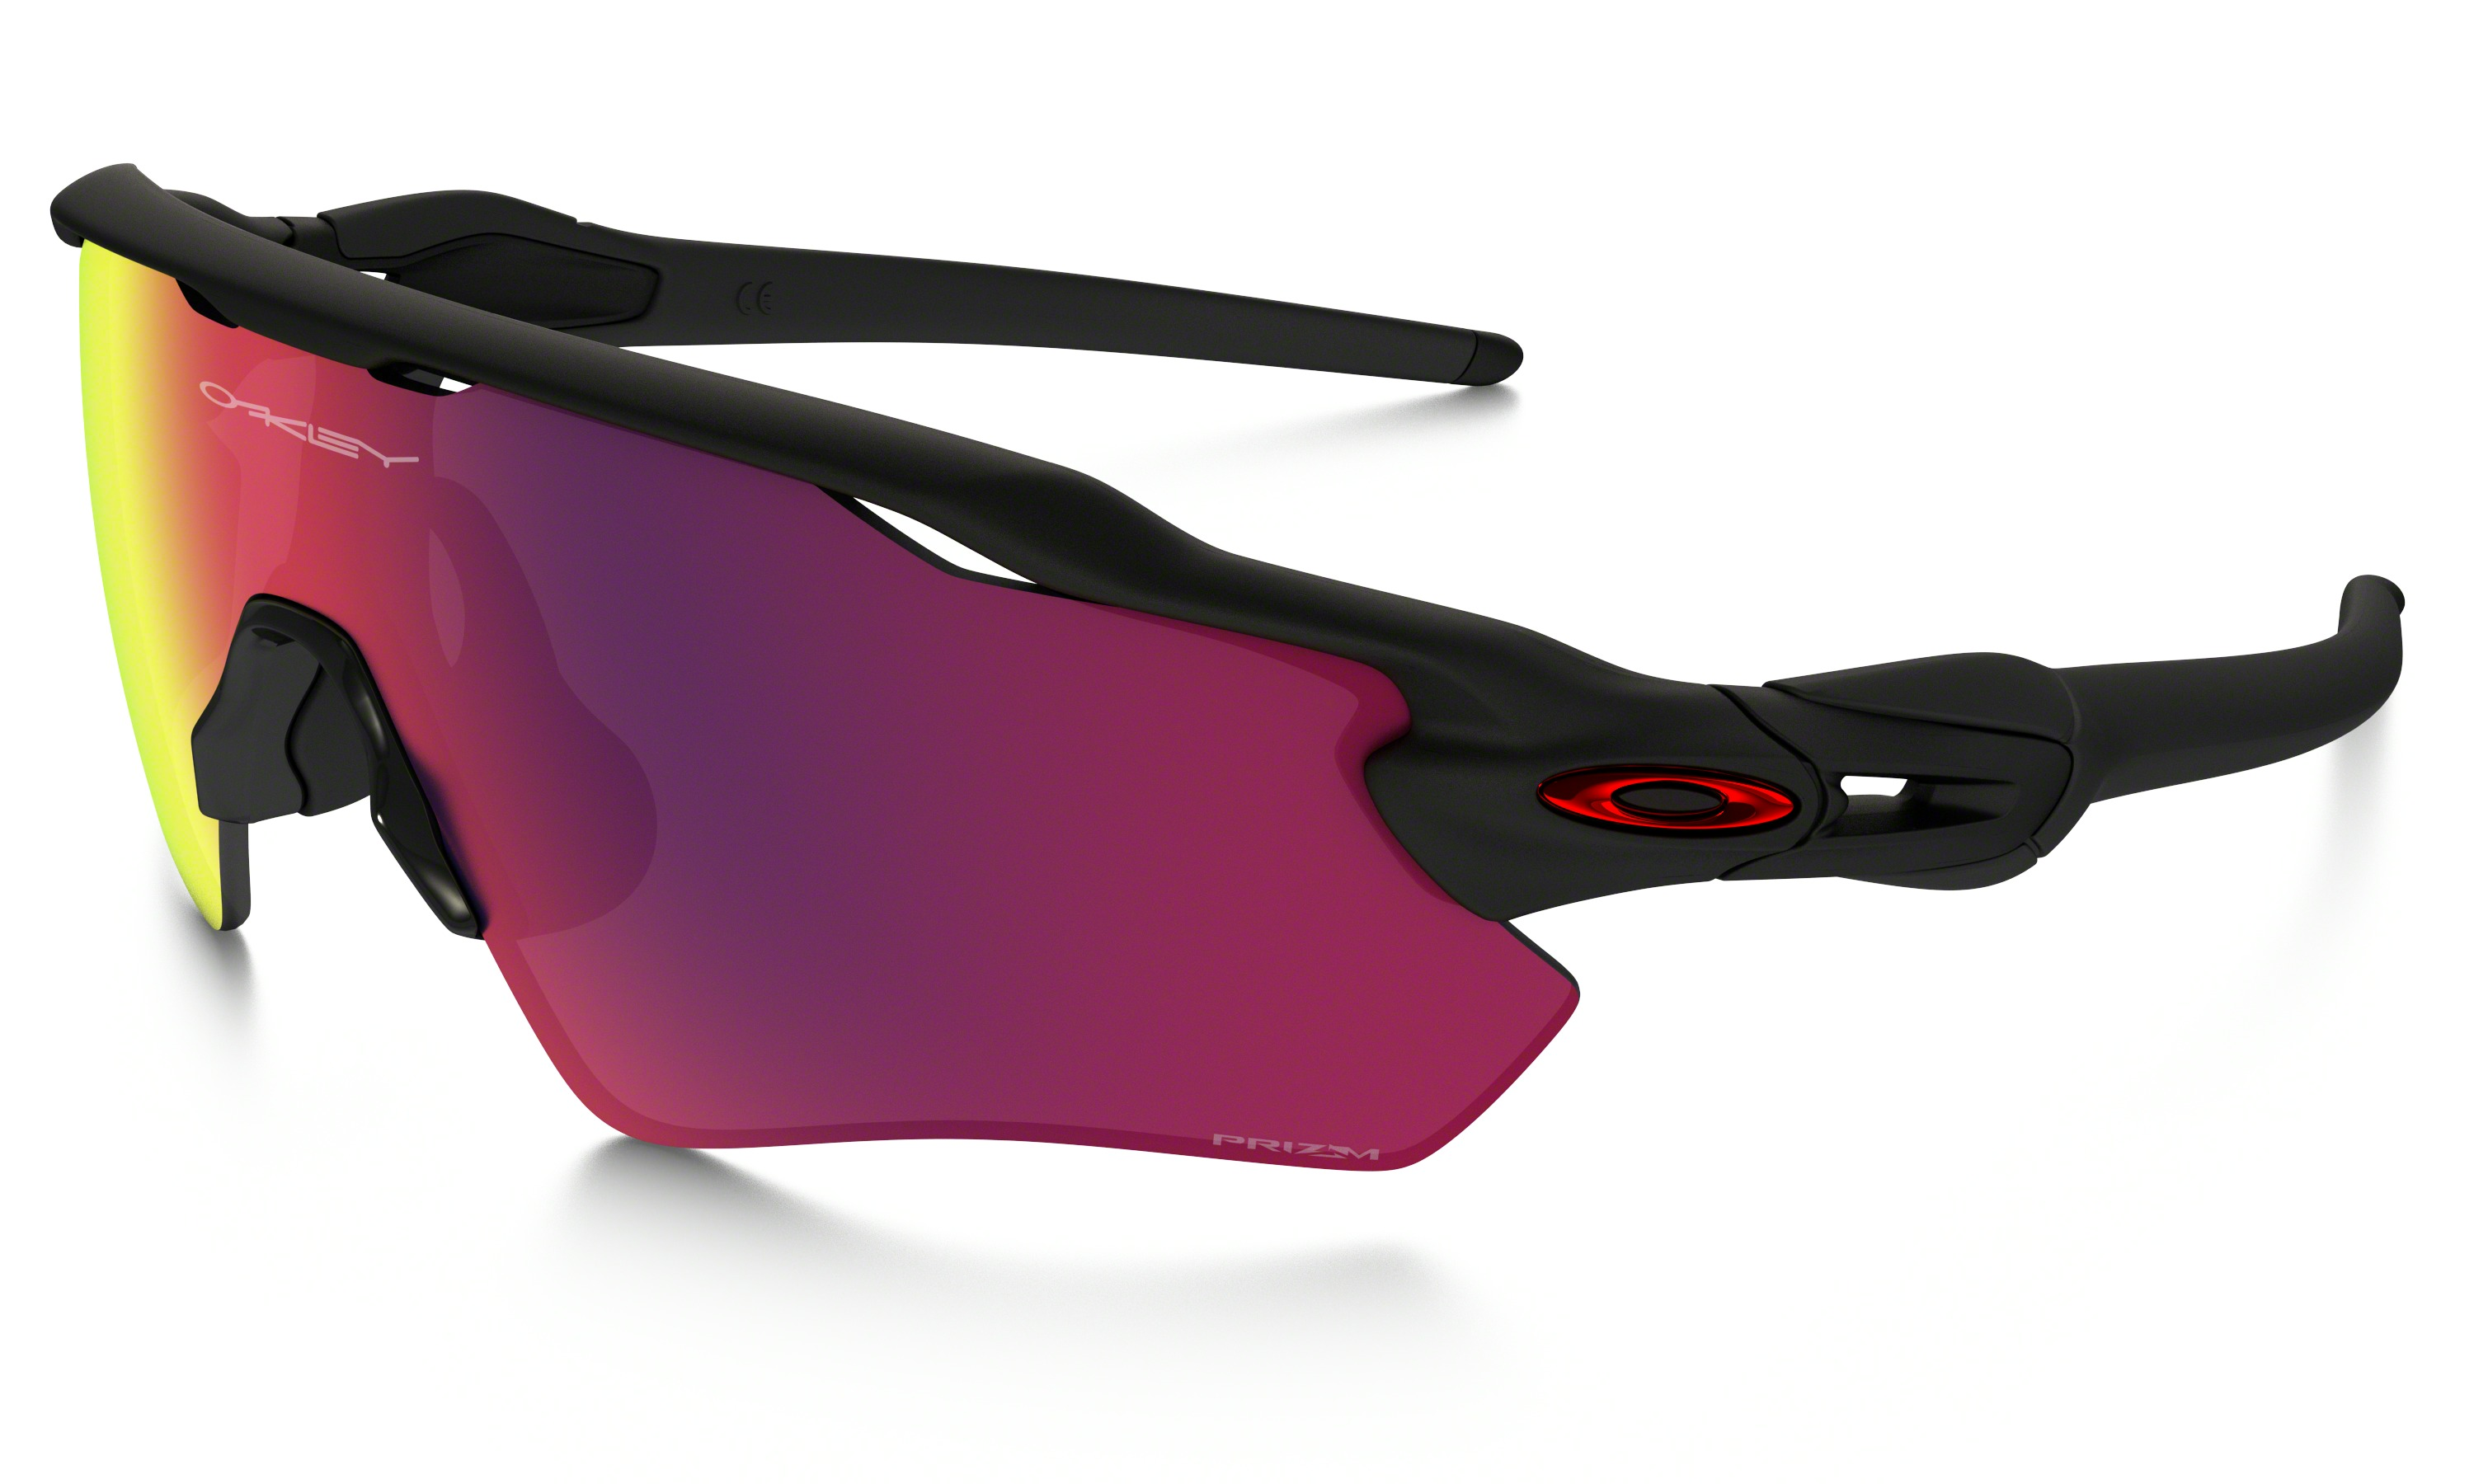 e5e02e2c53 Oakley Radar EV Path Sunglasses - Matte Black   Prizm Road - RxSport